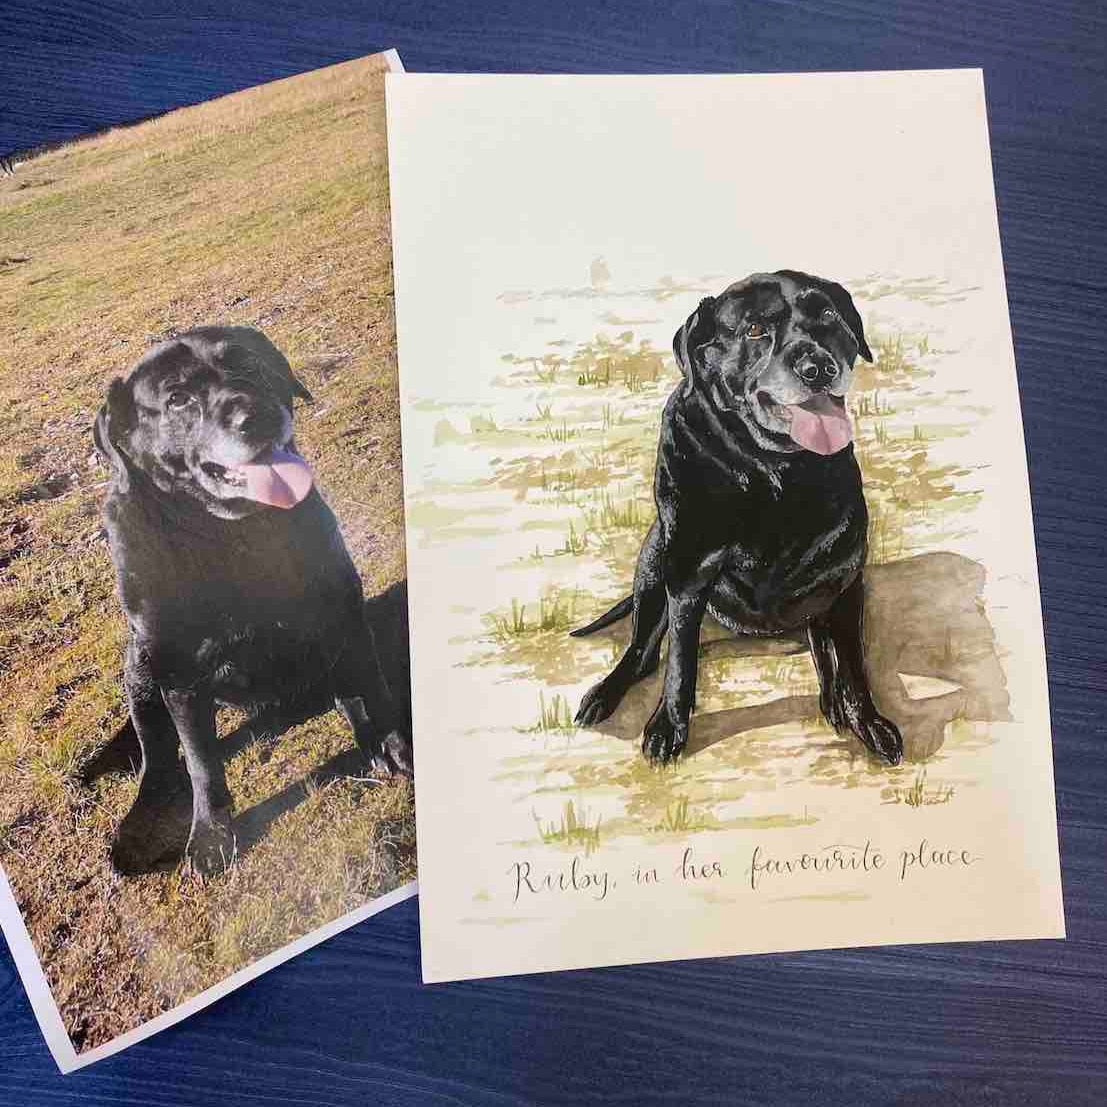 Detailed painting of black Labrador alongside original photo reference of the same dog, both pages are laid on a dark blue background.